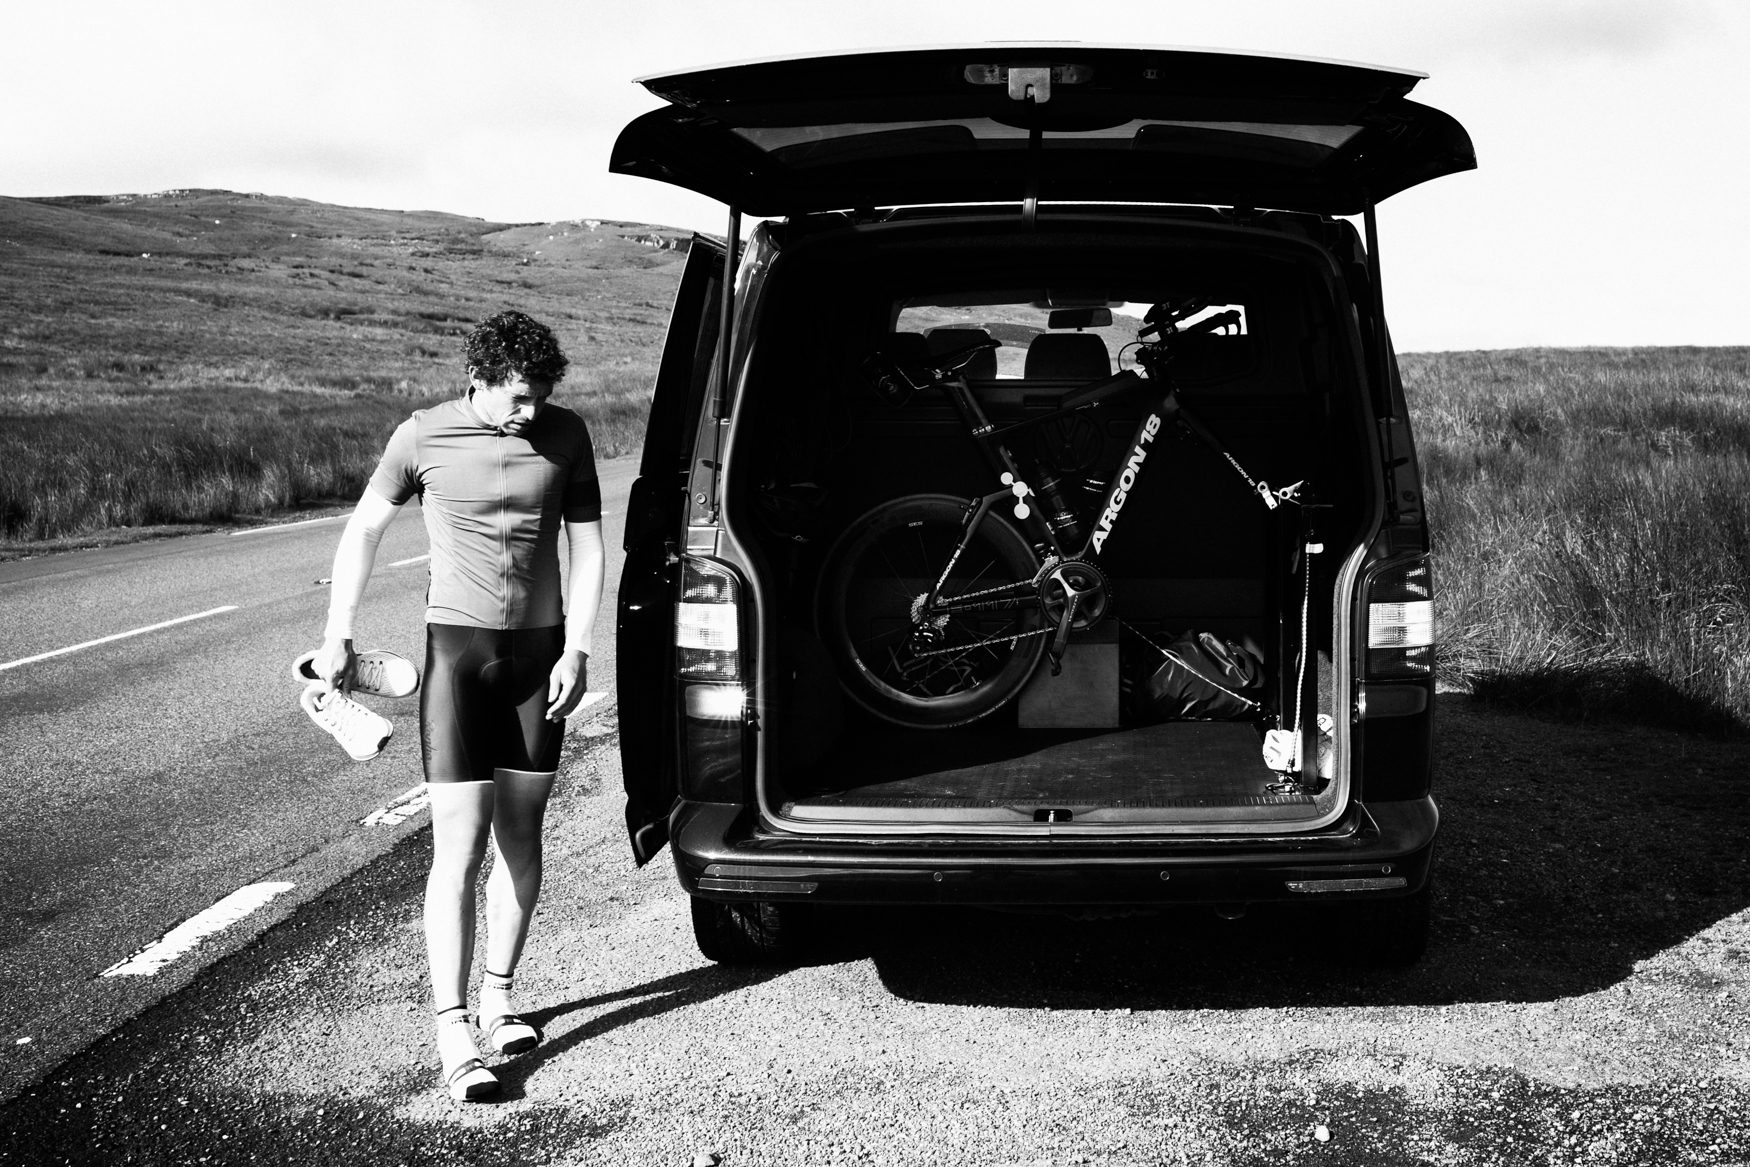 Alex-Sedgmond-Photography-Cardiff-RAS-BreconBeacons-Cycling-Photography-37.JPG